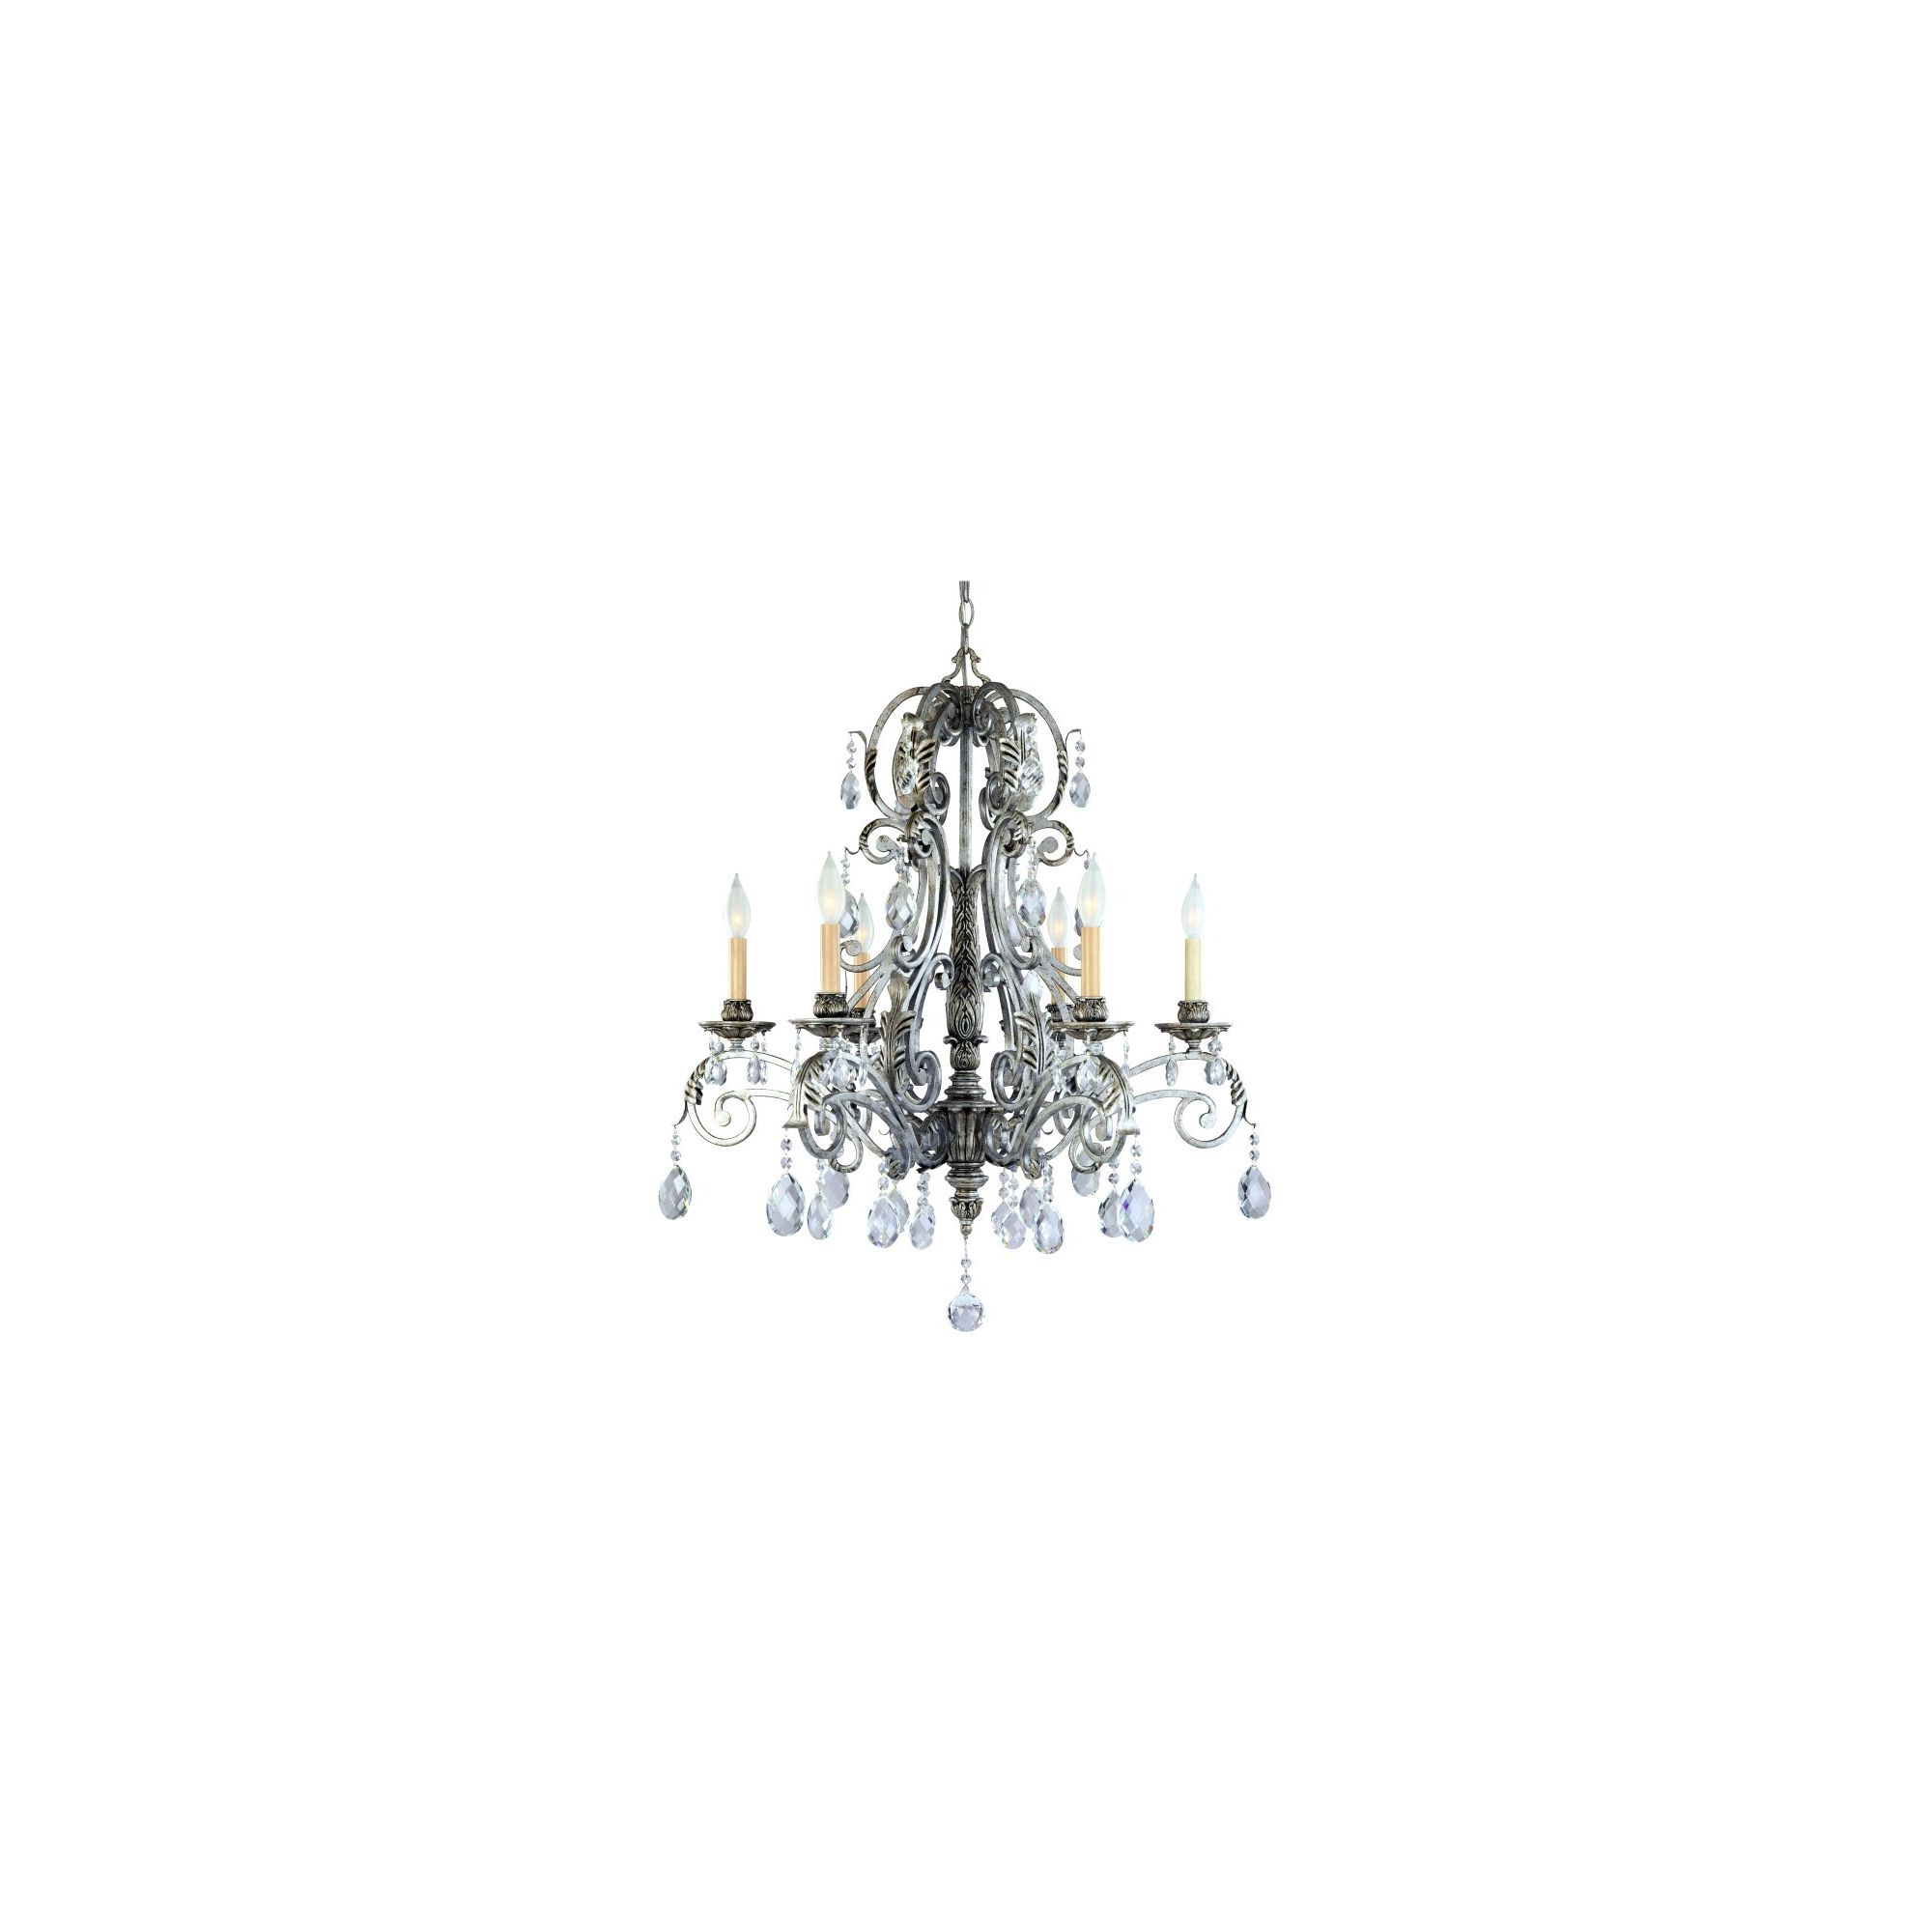 Savoy House Barcelona Six Light Wall Sconce in Distressed Silver at Tesco Direct